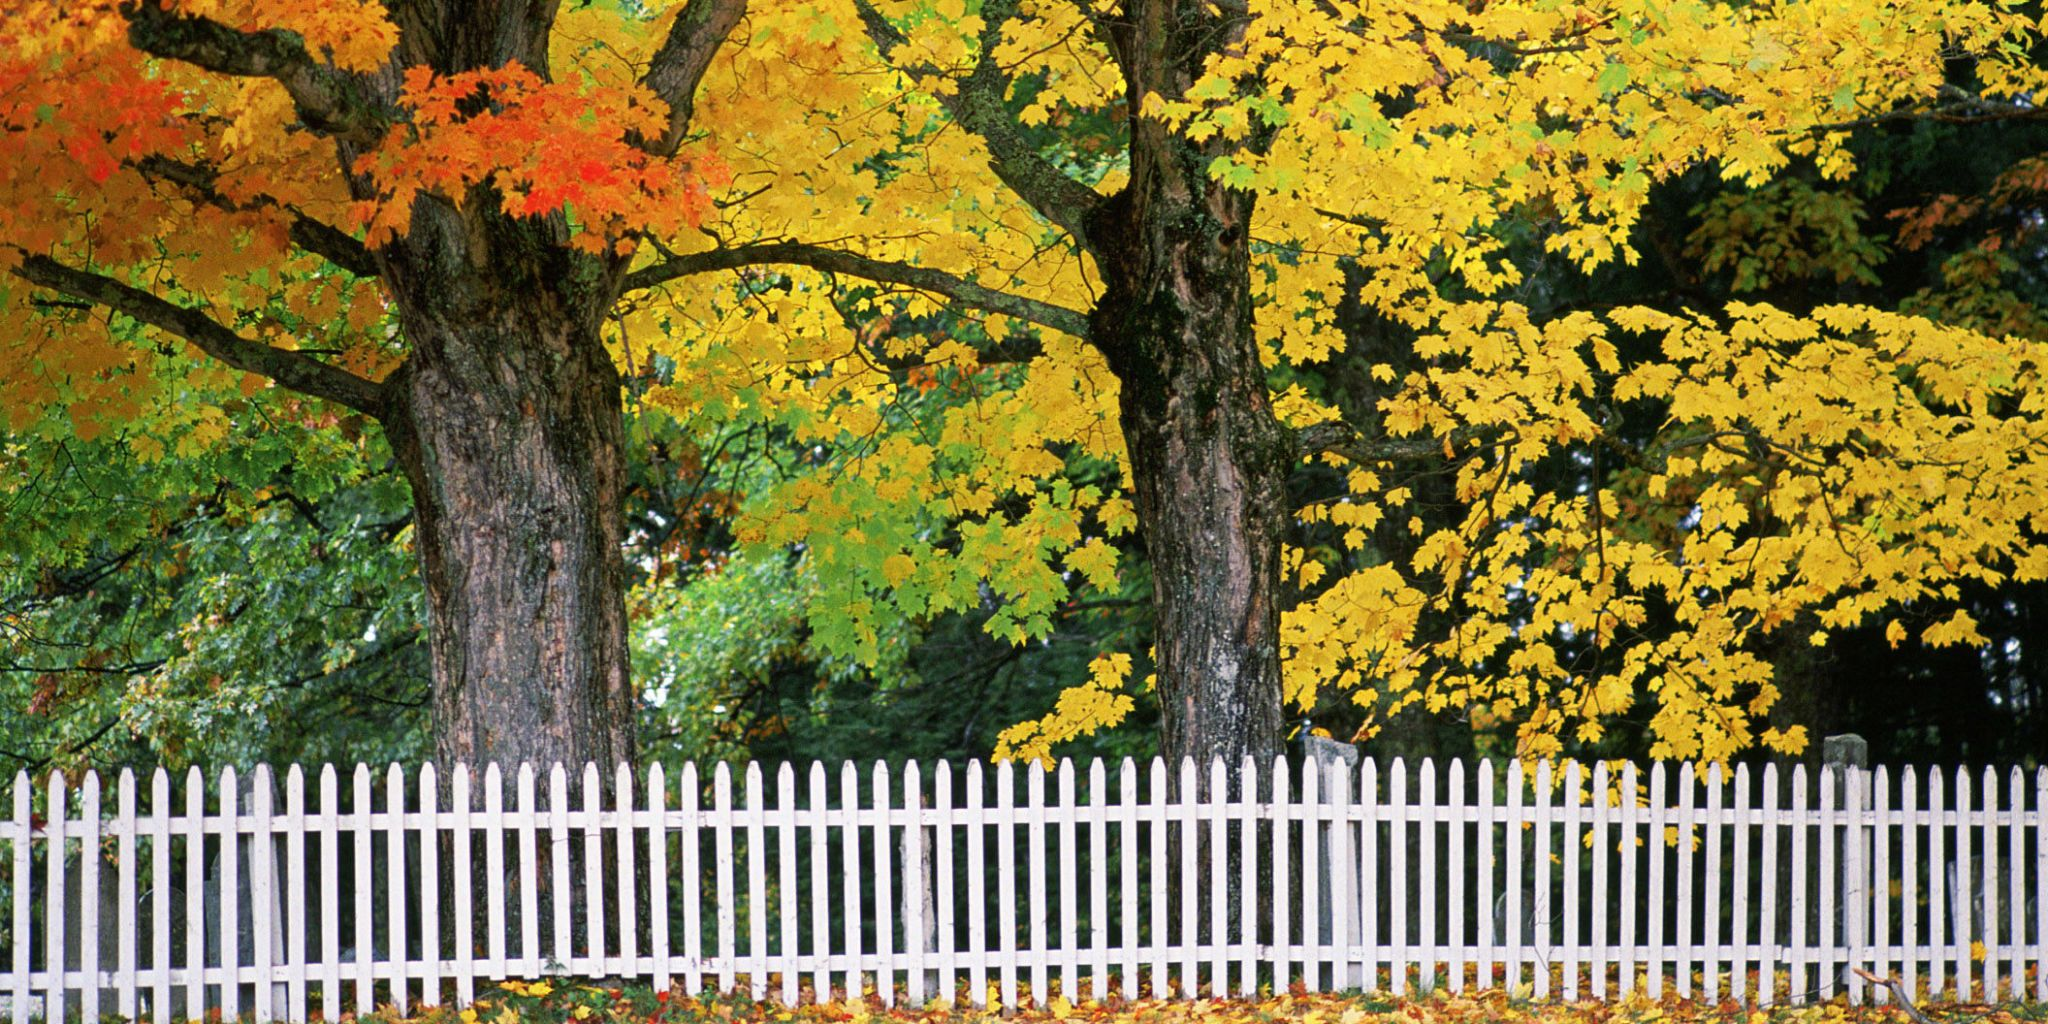 10 Things Pro Landscapers Do To Their Yards Every Fall